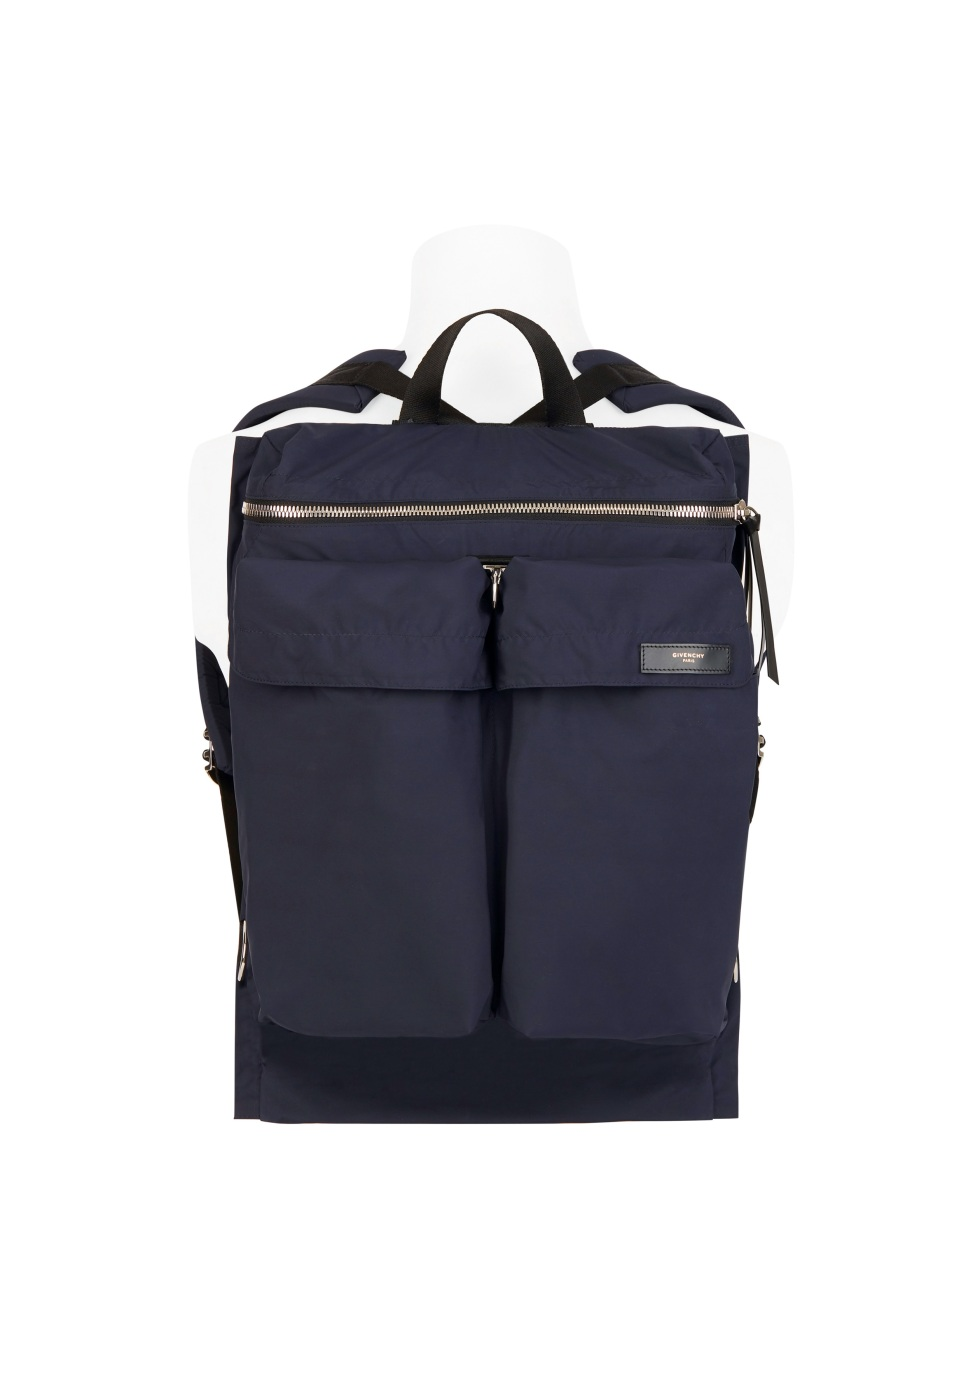 Givenchy_Flat Backpack in Navy Soft Nylon_HKD10200